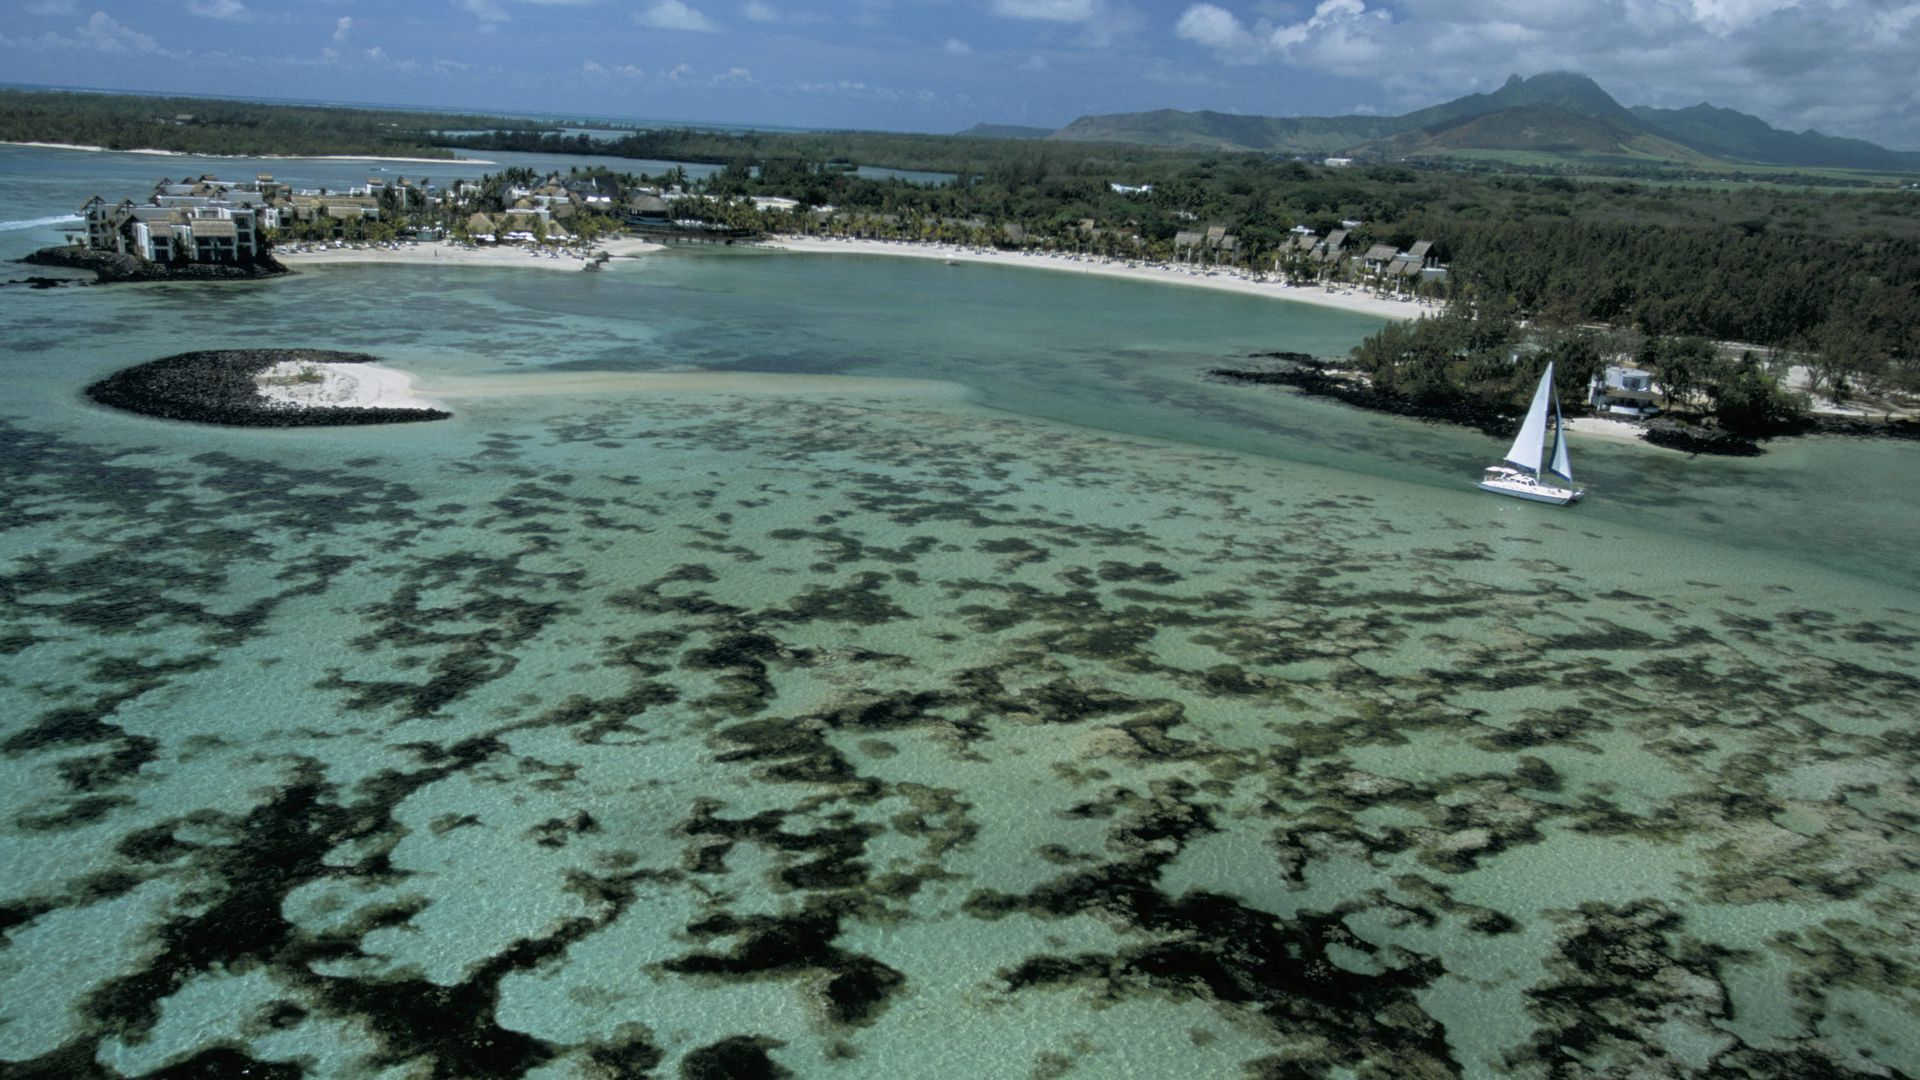 Mauritius (Photo by Marka/Universal Images Group via Getty Images)